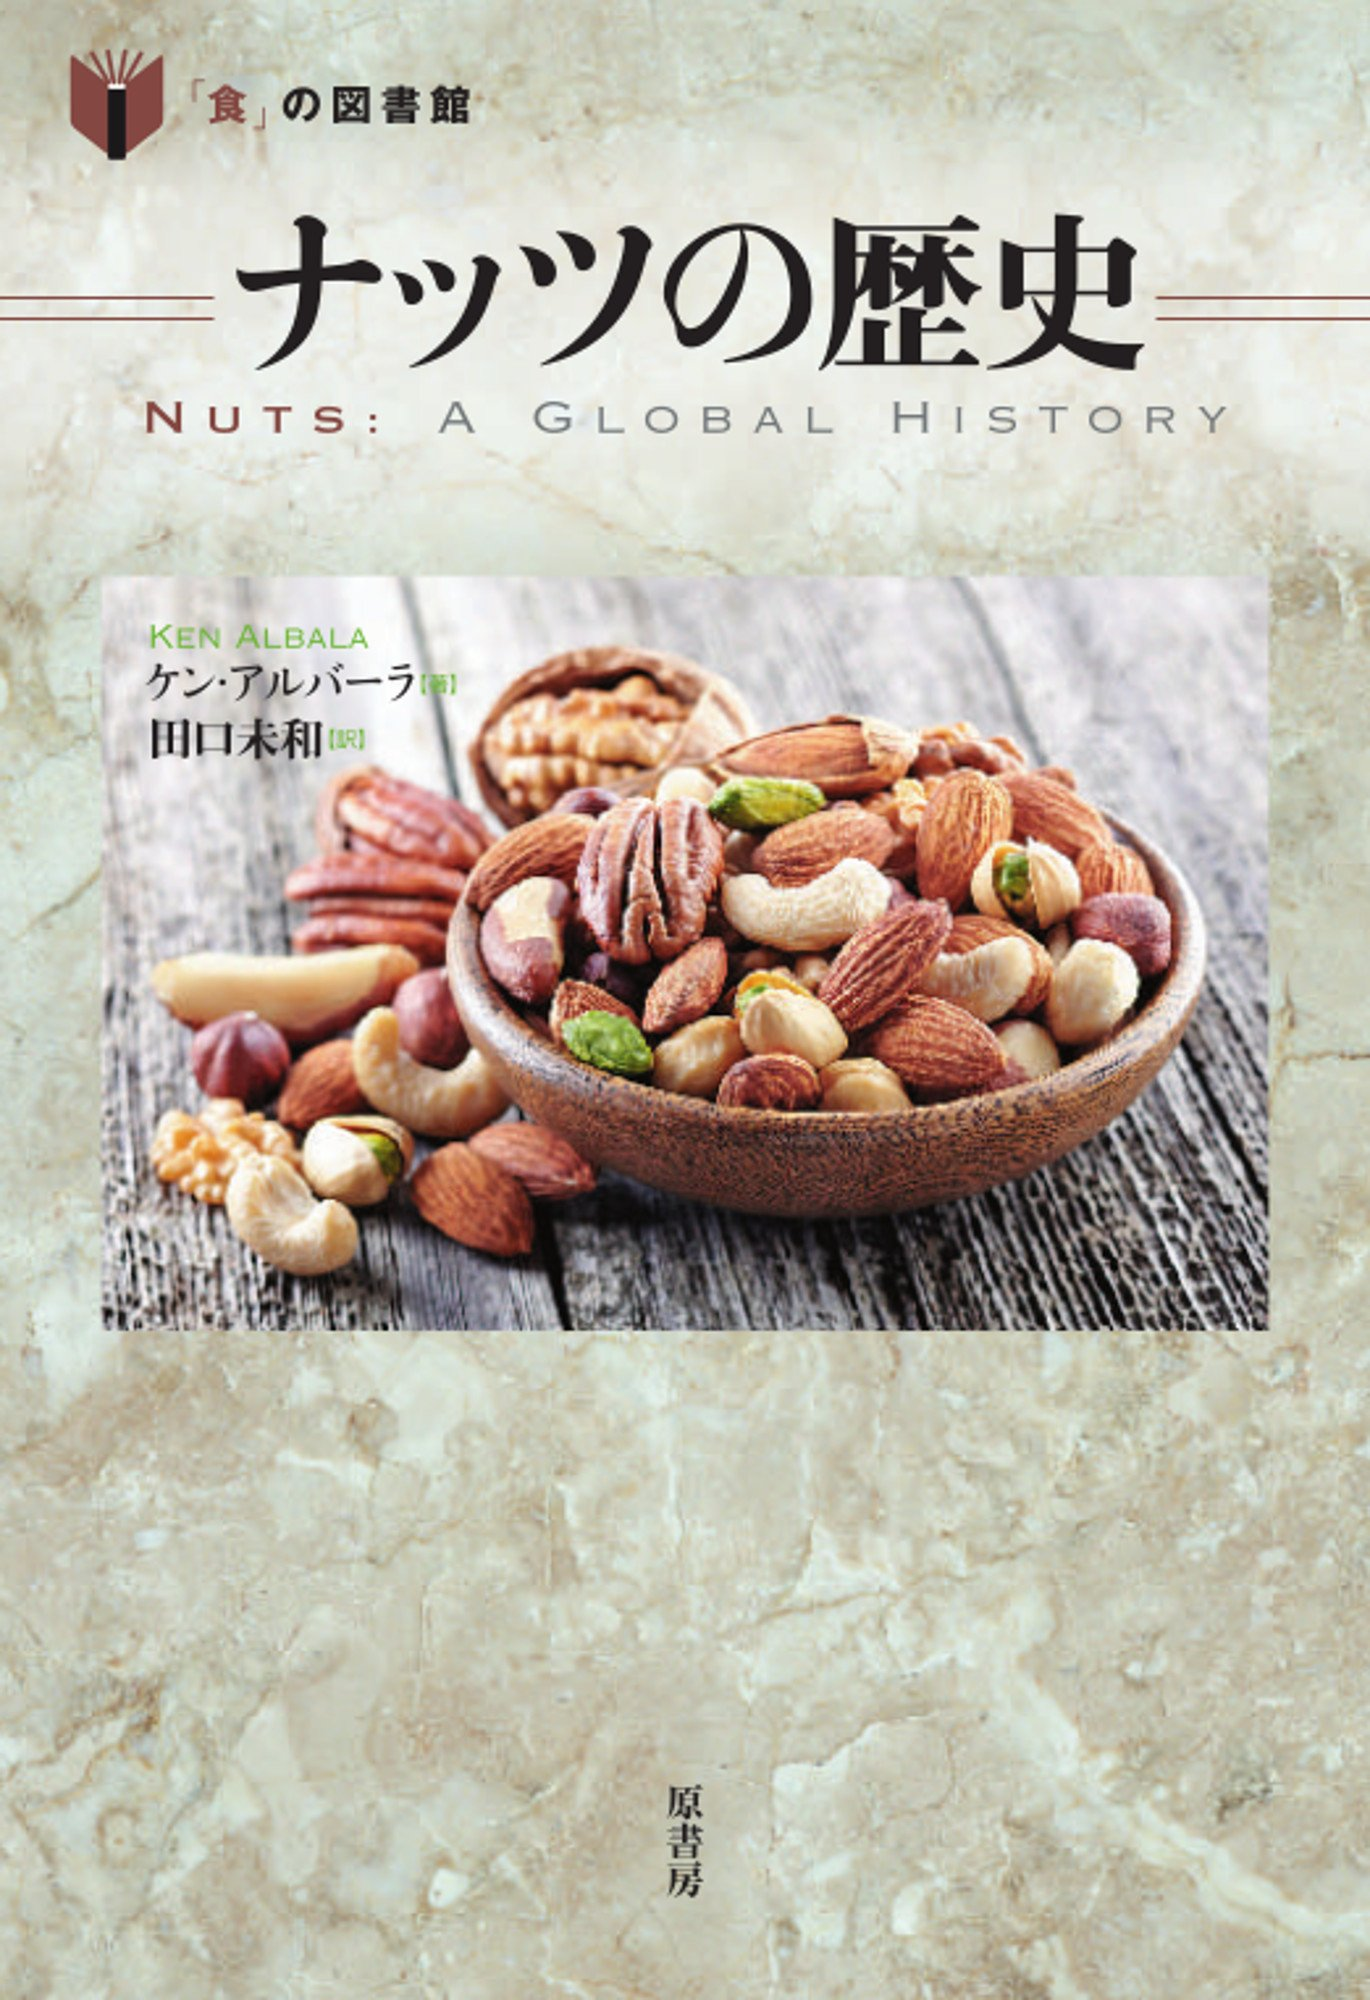 Nuts: A Global History  - Japanese